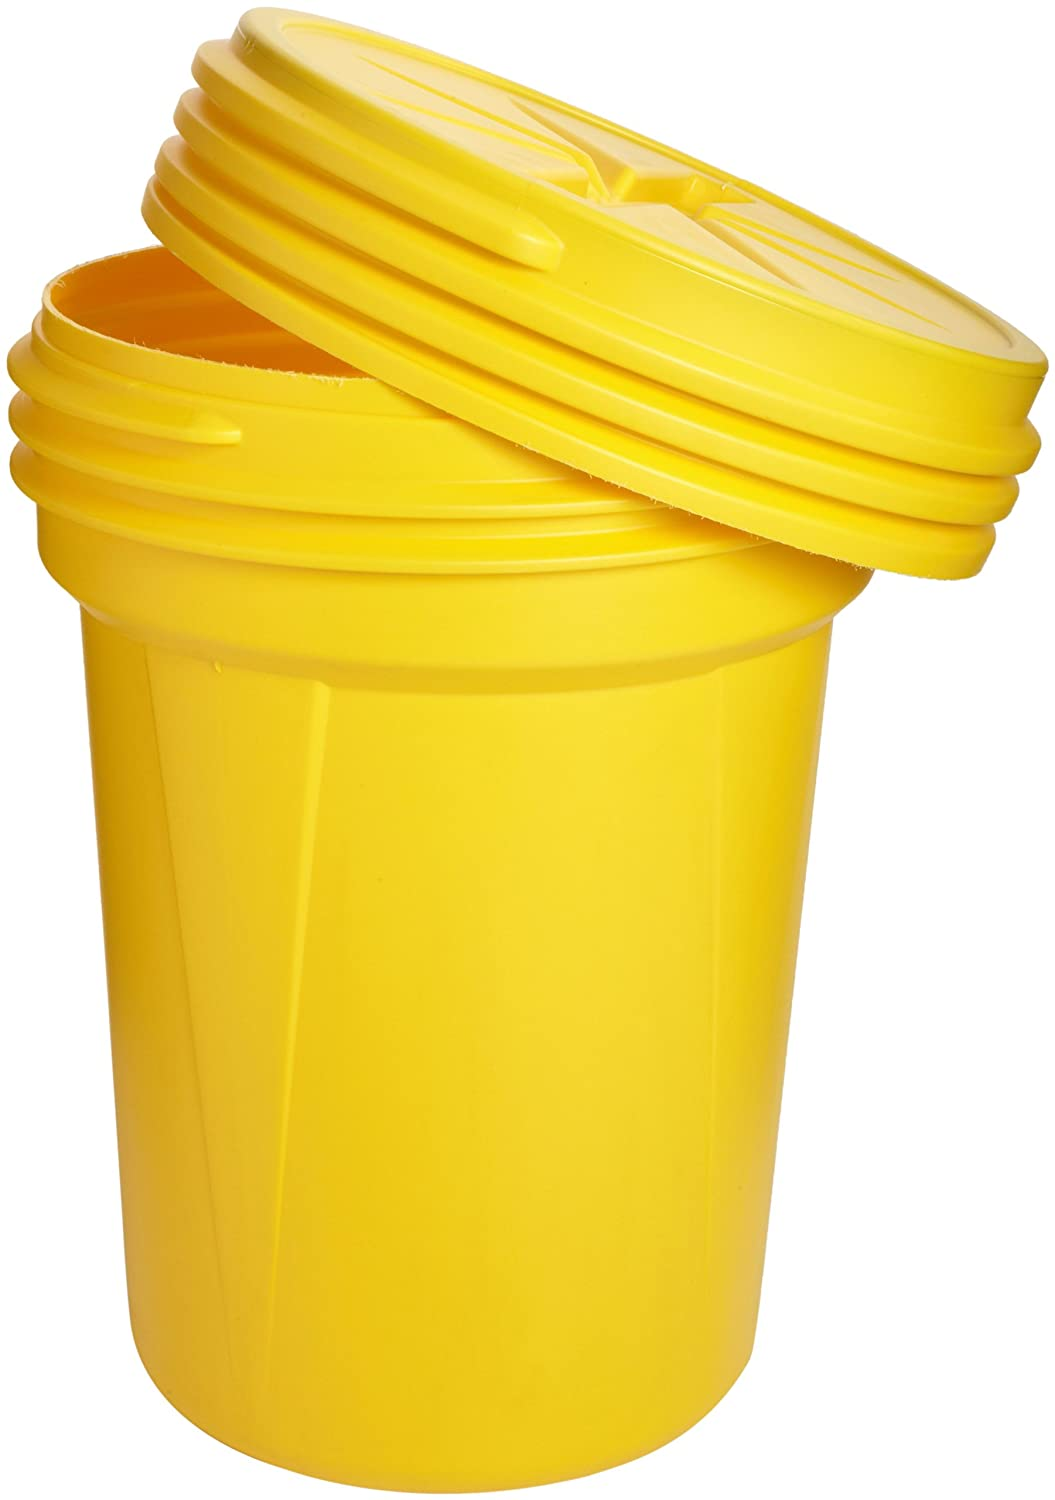 Eagle 1600SL Yellow High Density Polyethylene Lab Pack Drum with Plastic Screw-On Lid, 30 Gallon Capacity, 28.25' Height, 22.5' Diameter 28.25 Height 22.5 Diameter Eagle Manufacturing Company